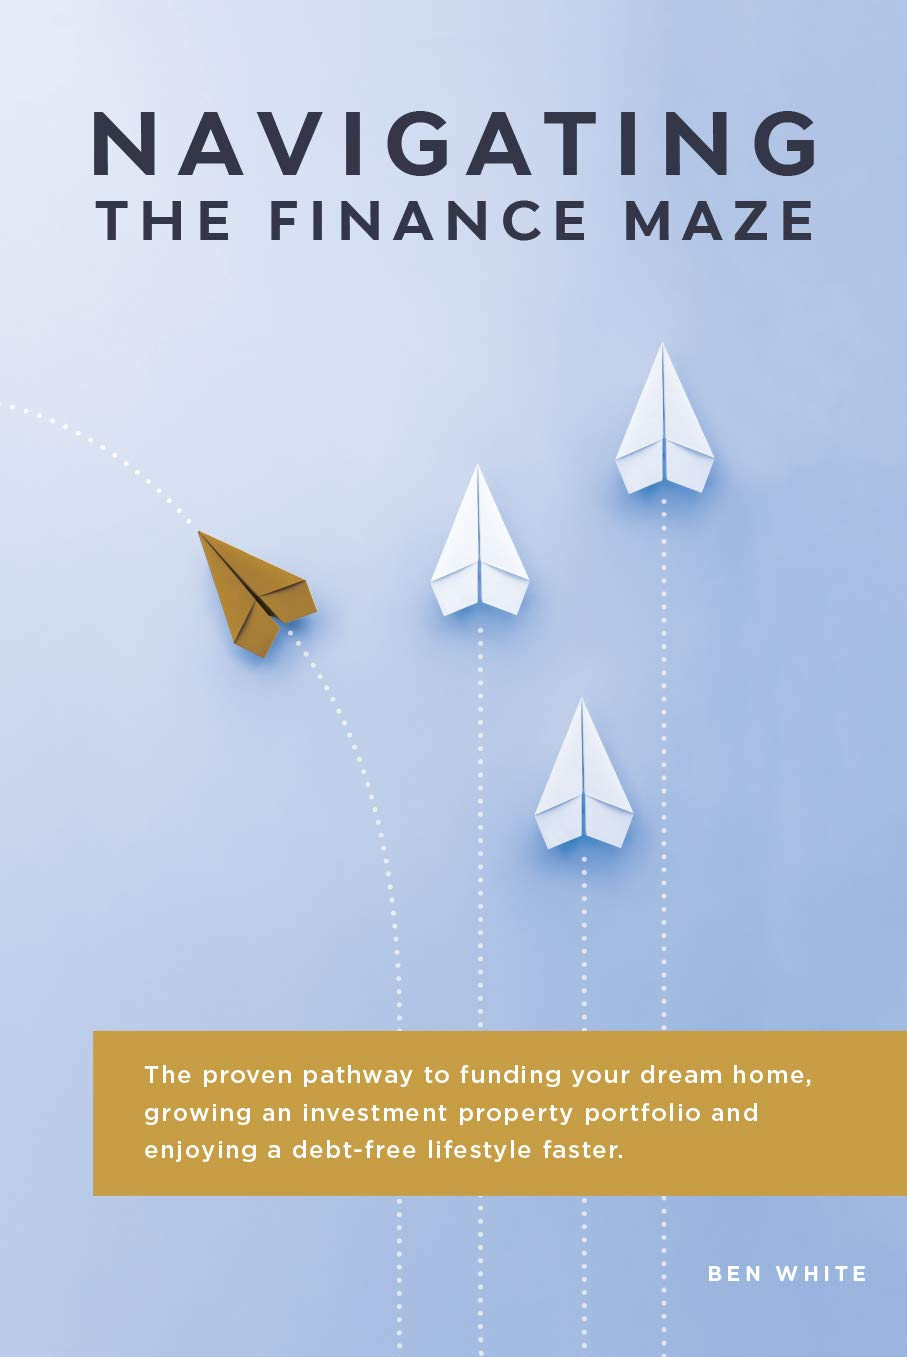 Navigating the Finance Maze: The proven pathway to funding your dream home, growing an investment property portfolio and enjoying a debt-free lifestyle faster. (First Edition Book 1)